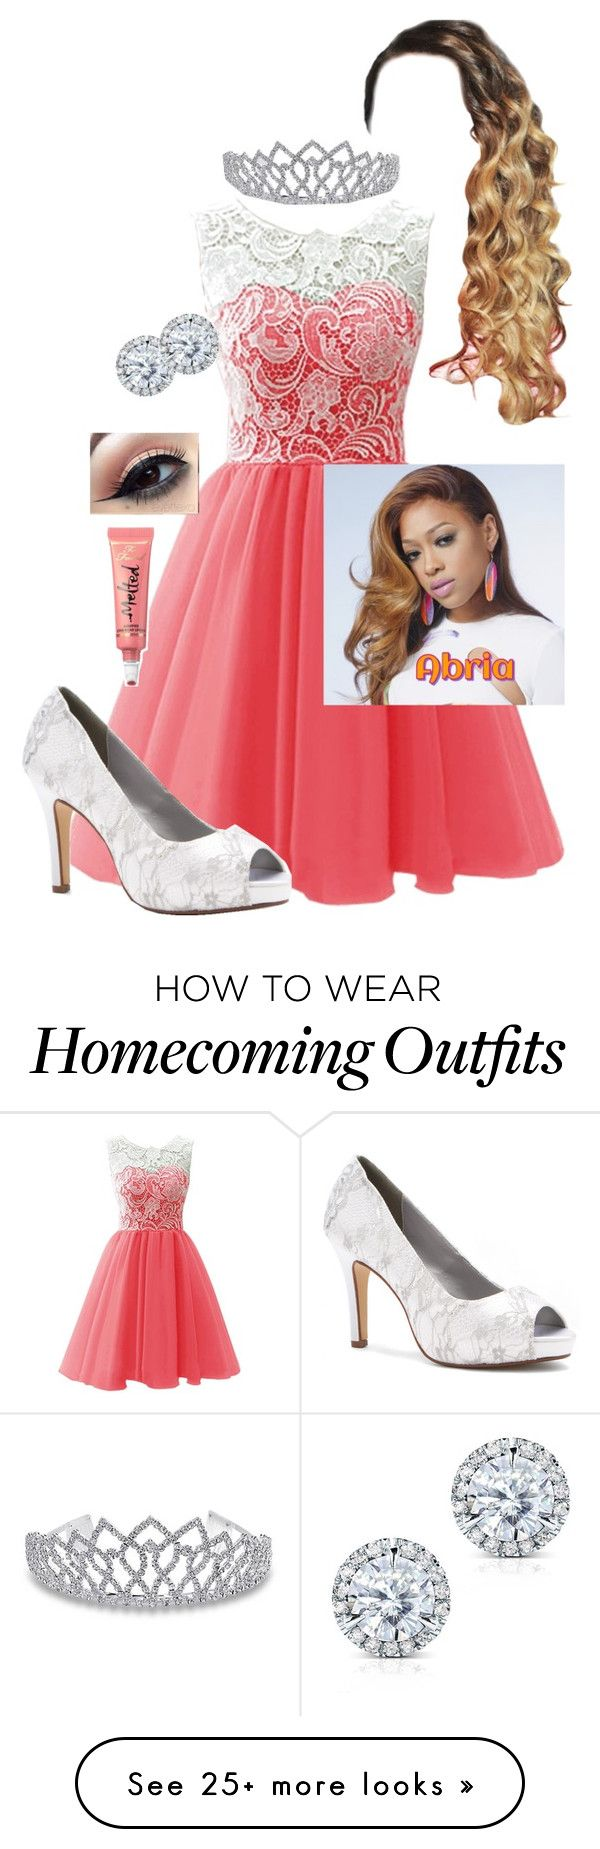 """Bri @ Prom☄"" by itsdejjj on Polyvore featuring Dyeables, Kobelli, Bling Jewelry, Too Faced Cosmetics, DejasWattpad and DejasProm"